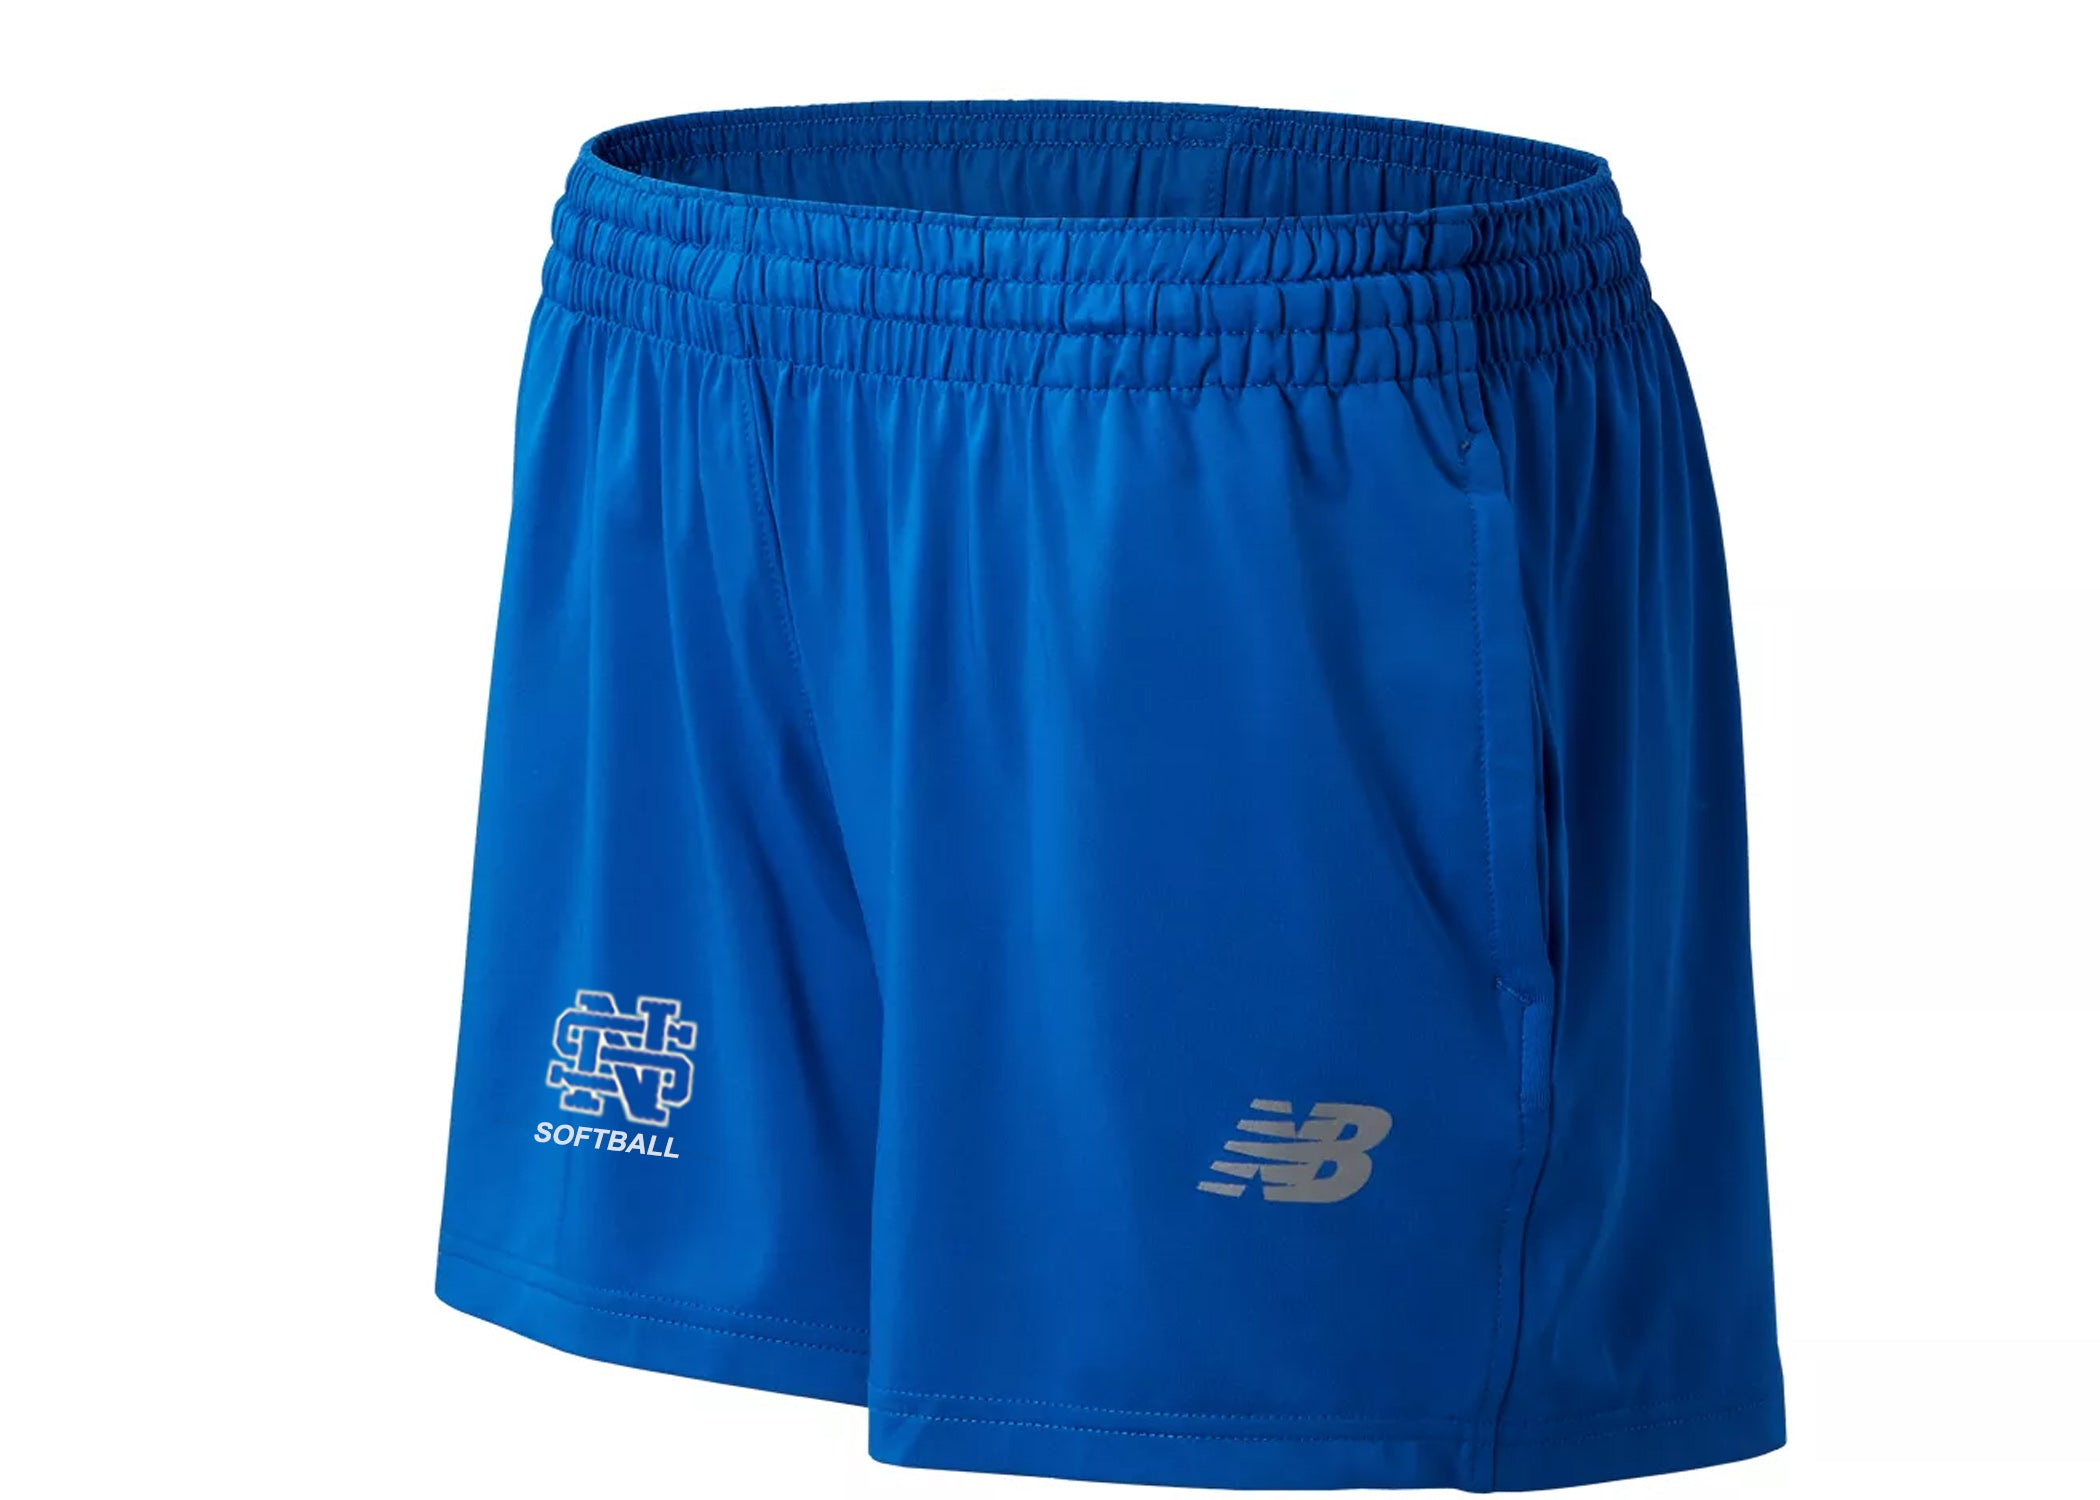 "New Balance Women's 4"" Tech Short NORTH SURRY SOFTBALL - AtlanticCoastSports"